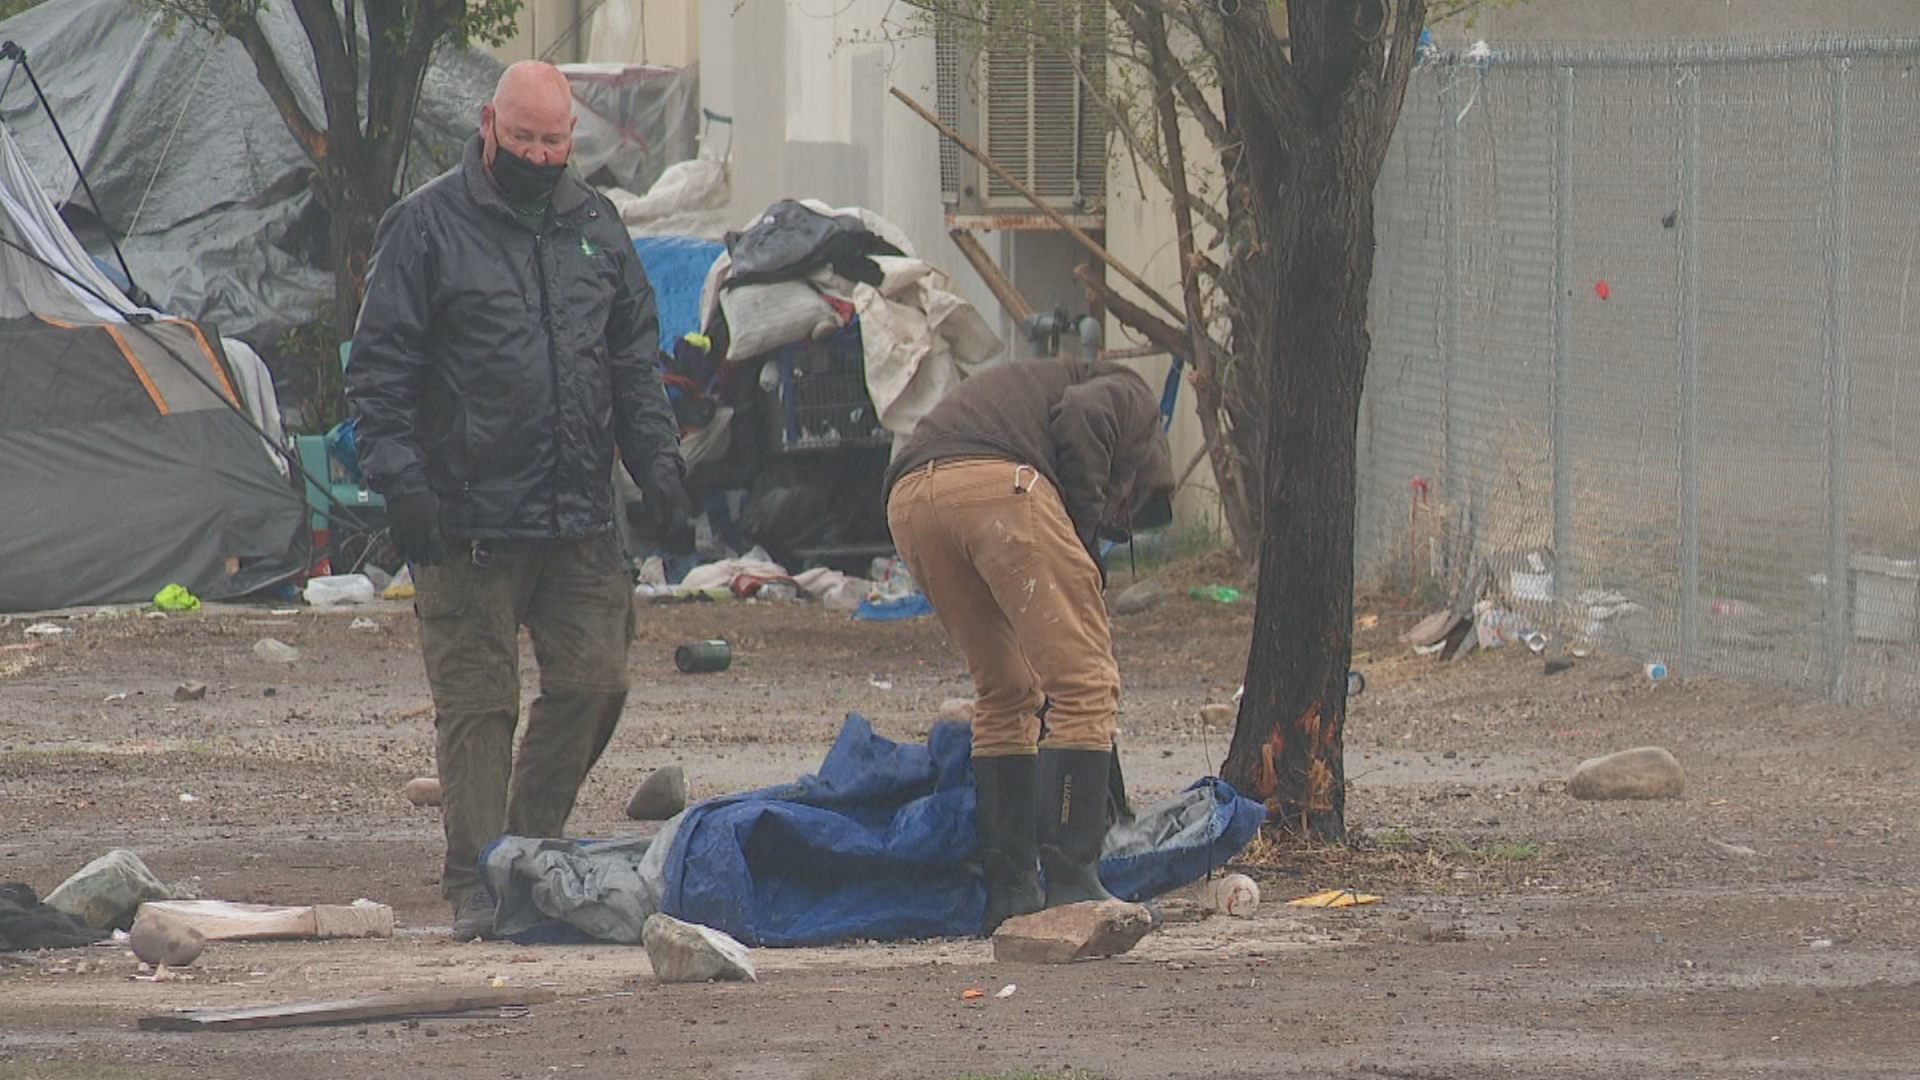 The Salt Lake County Health Department cleared out an encampment on the city's Fleet block earlier this week. (File photo: KUTV)